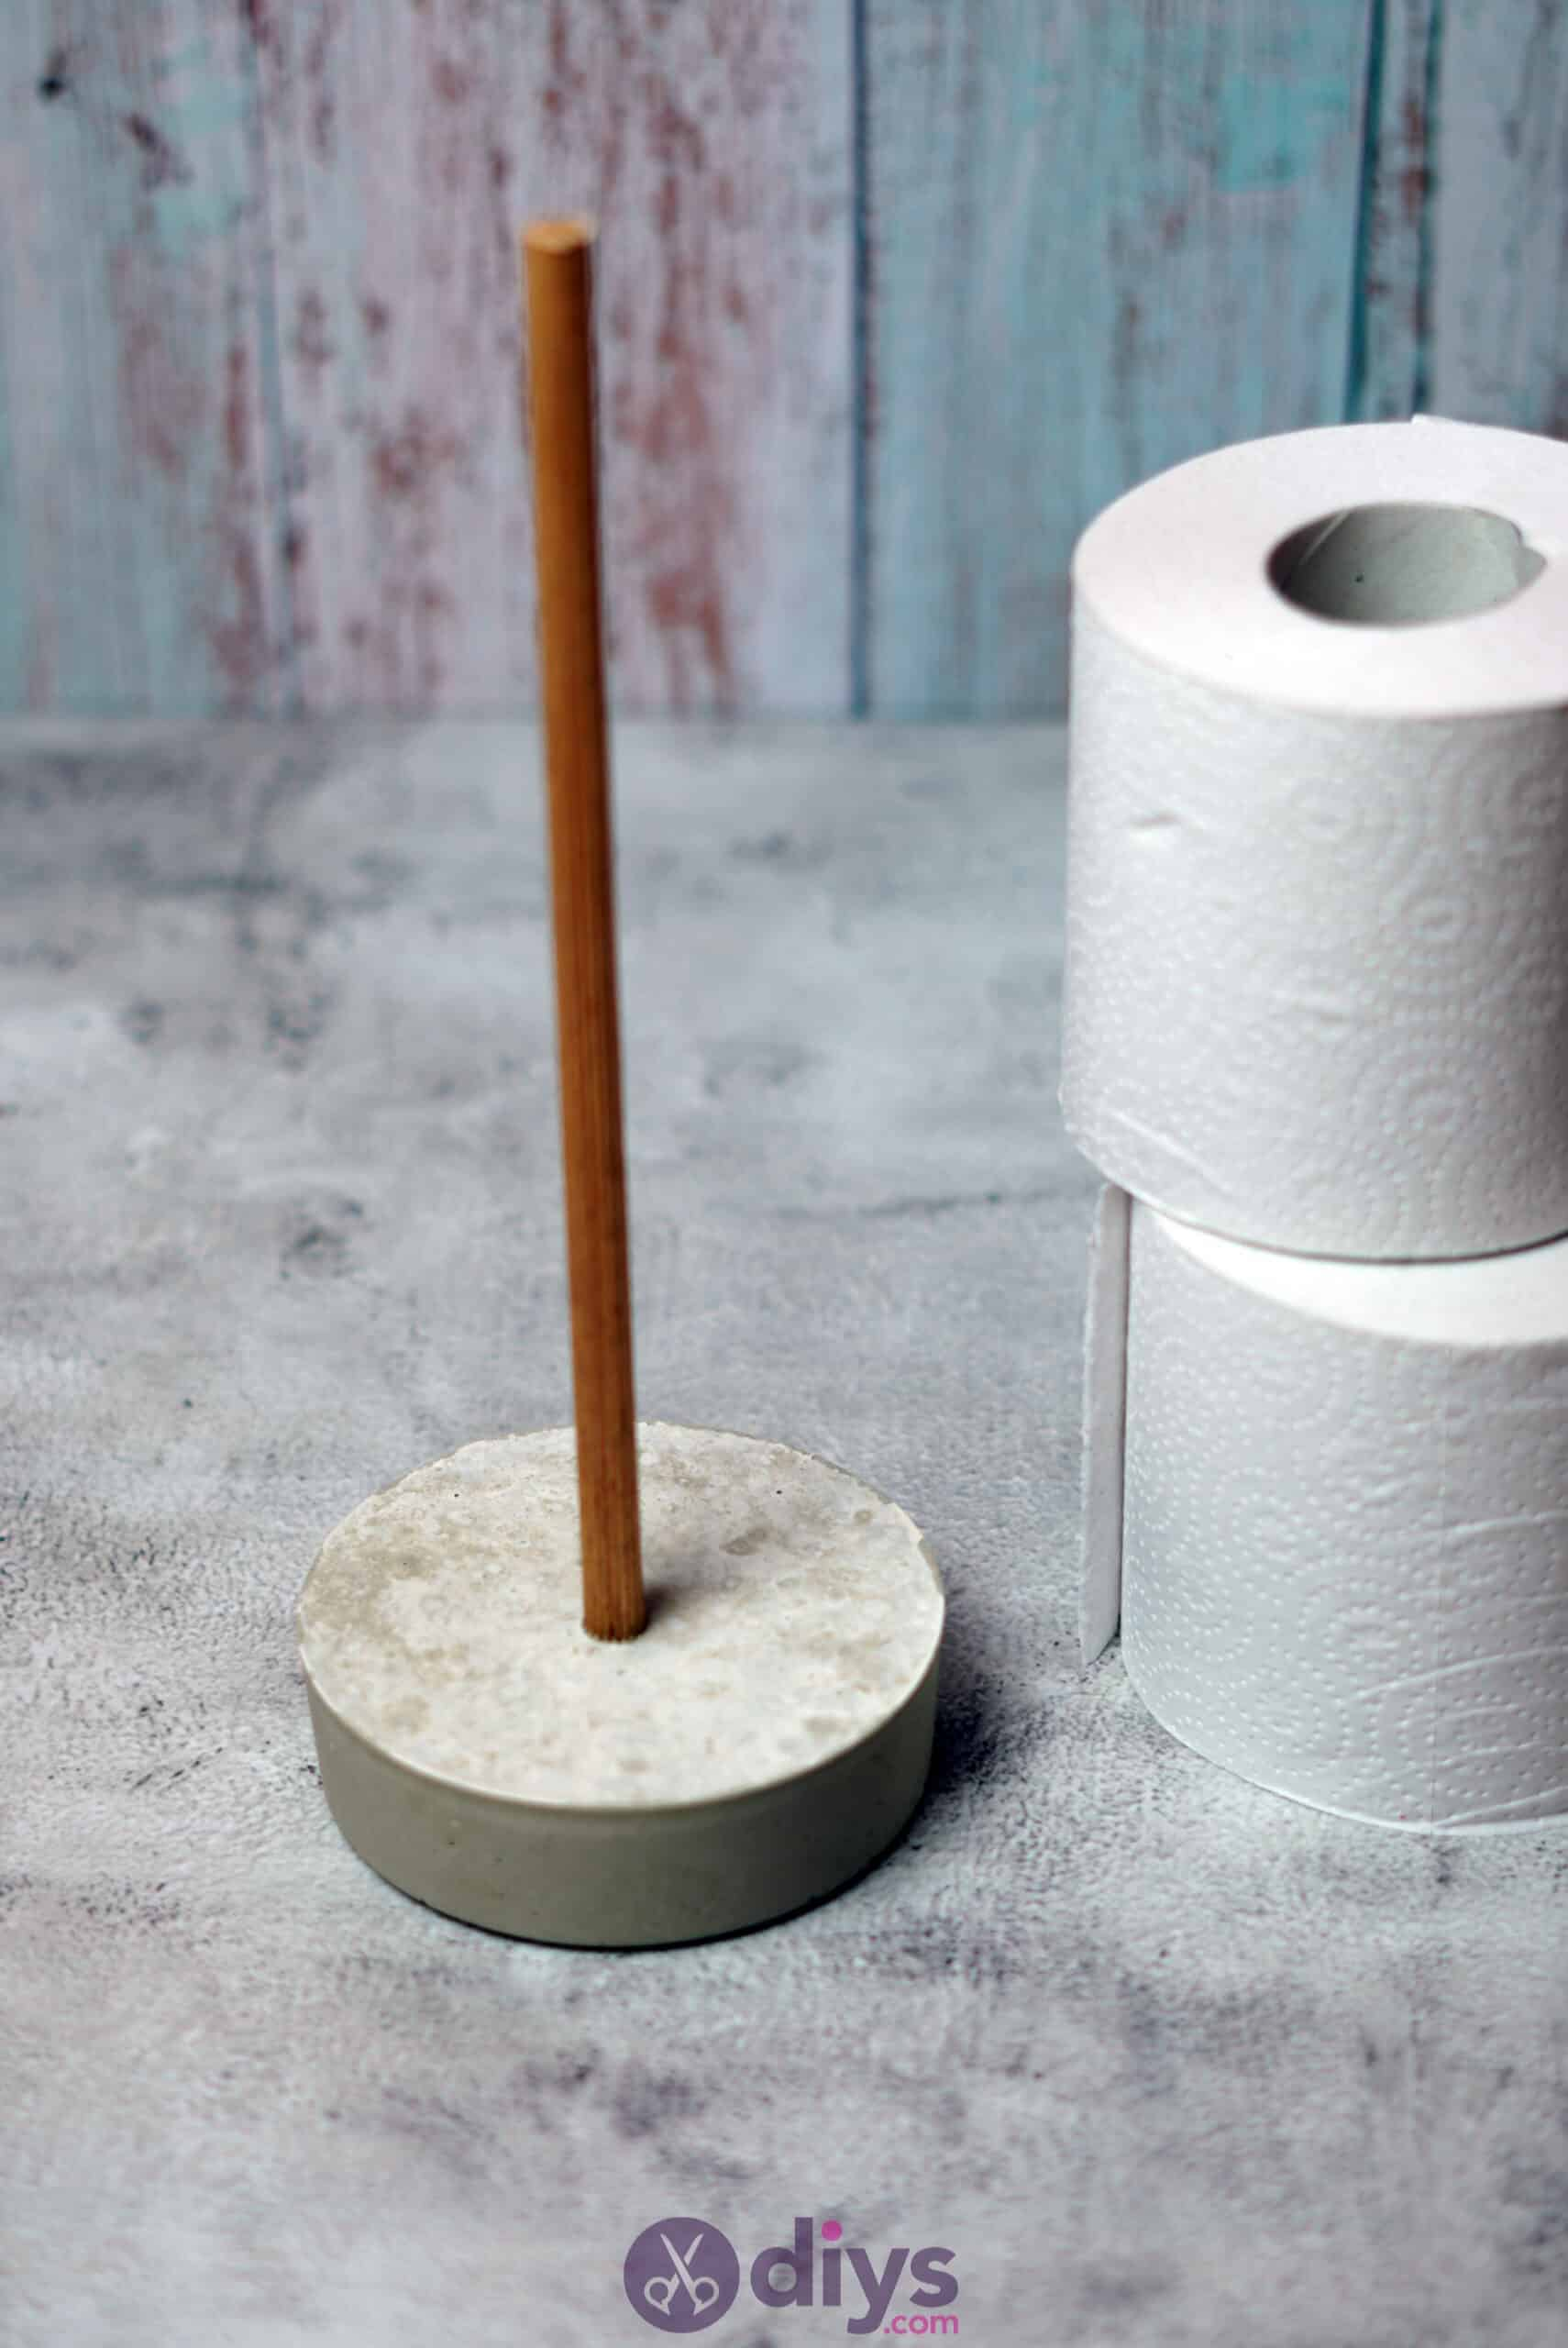 Diy Concrete Toilet Paper Holder